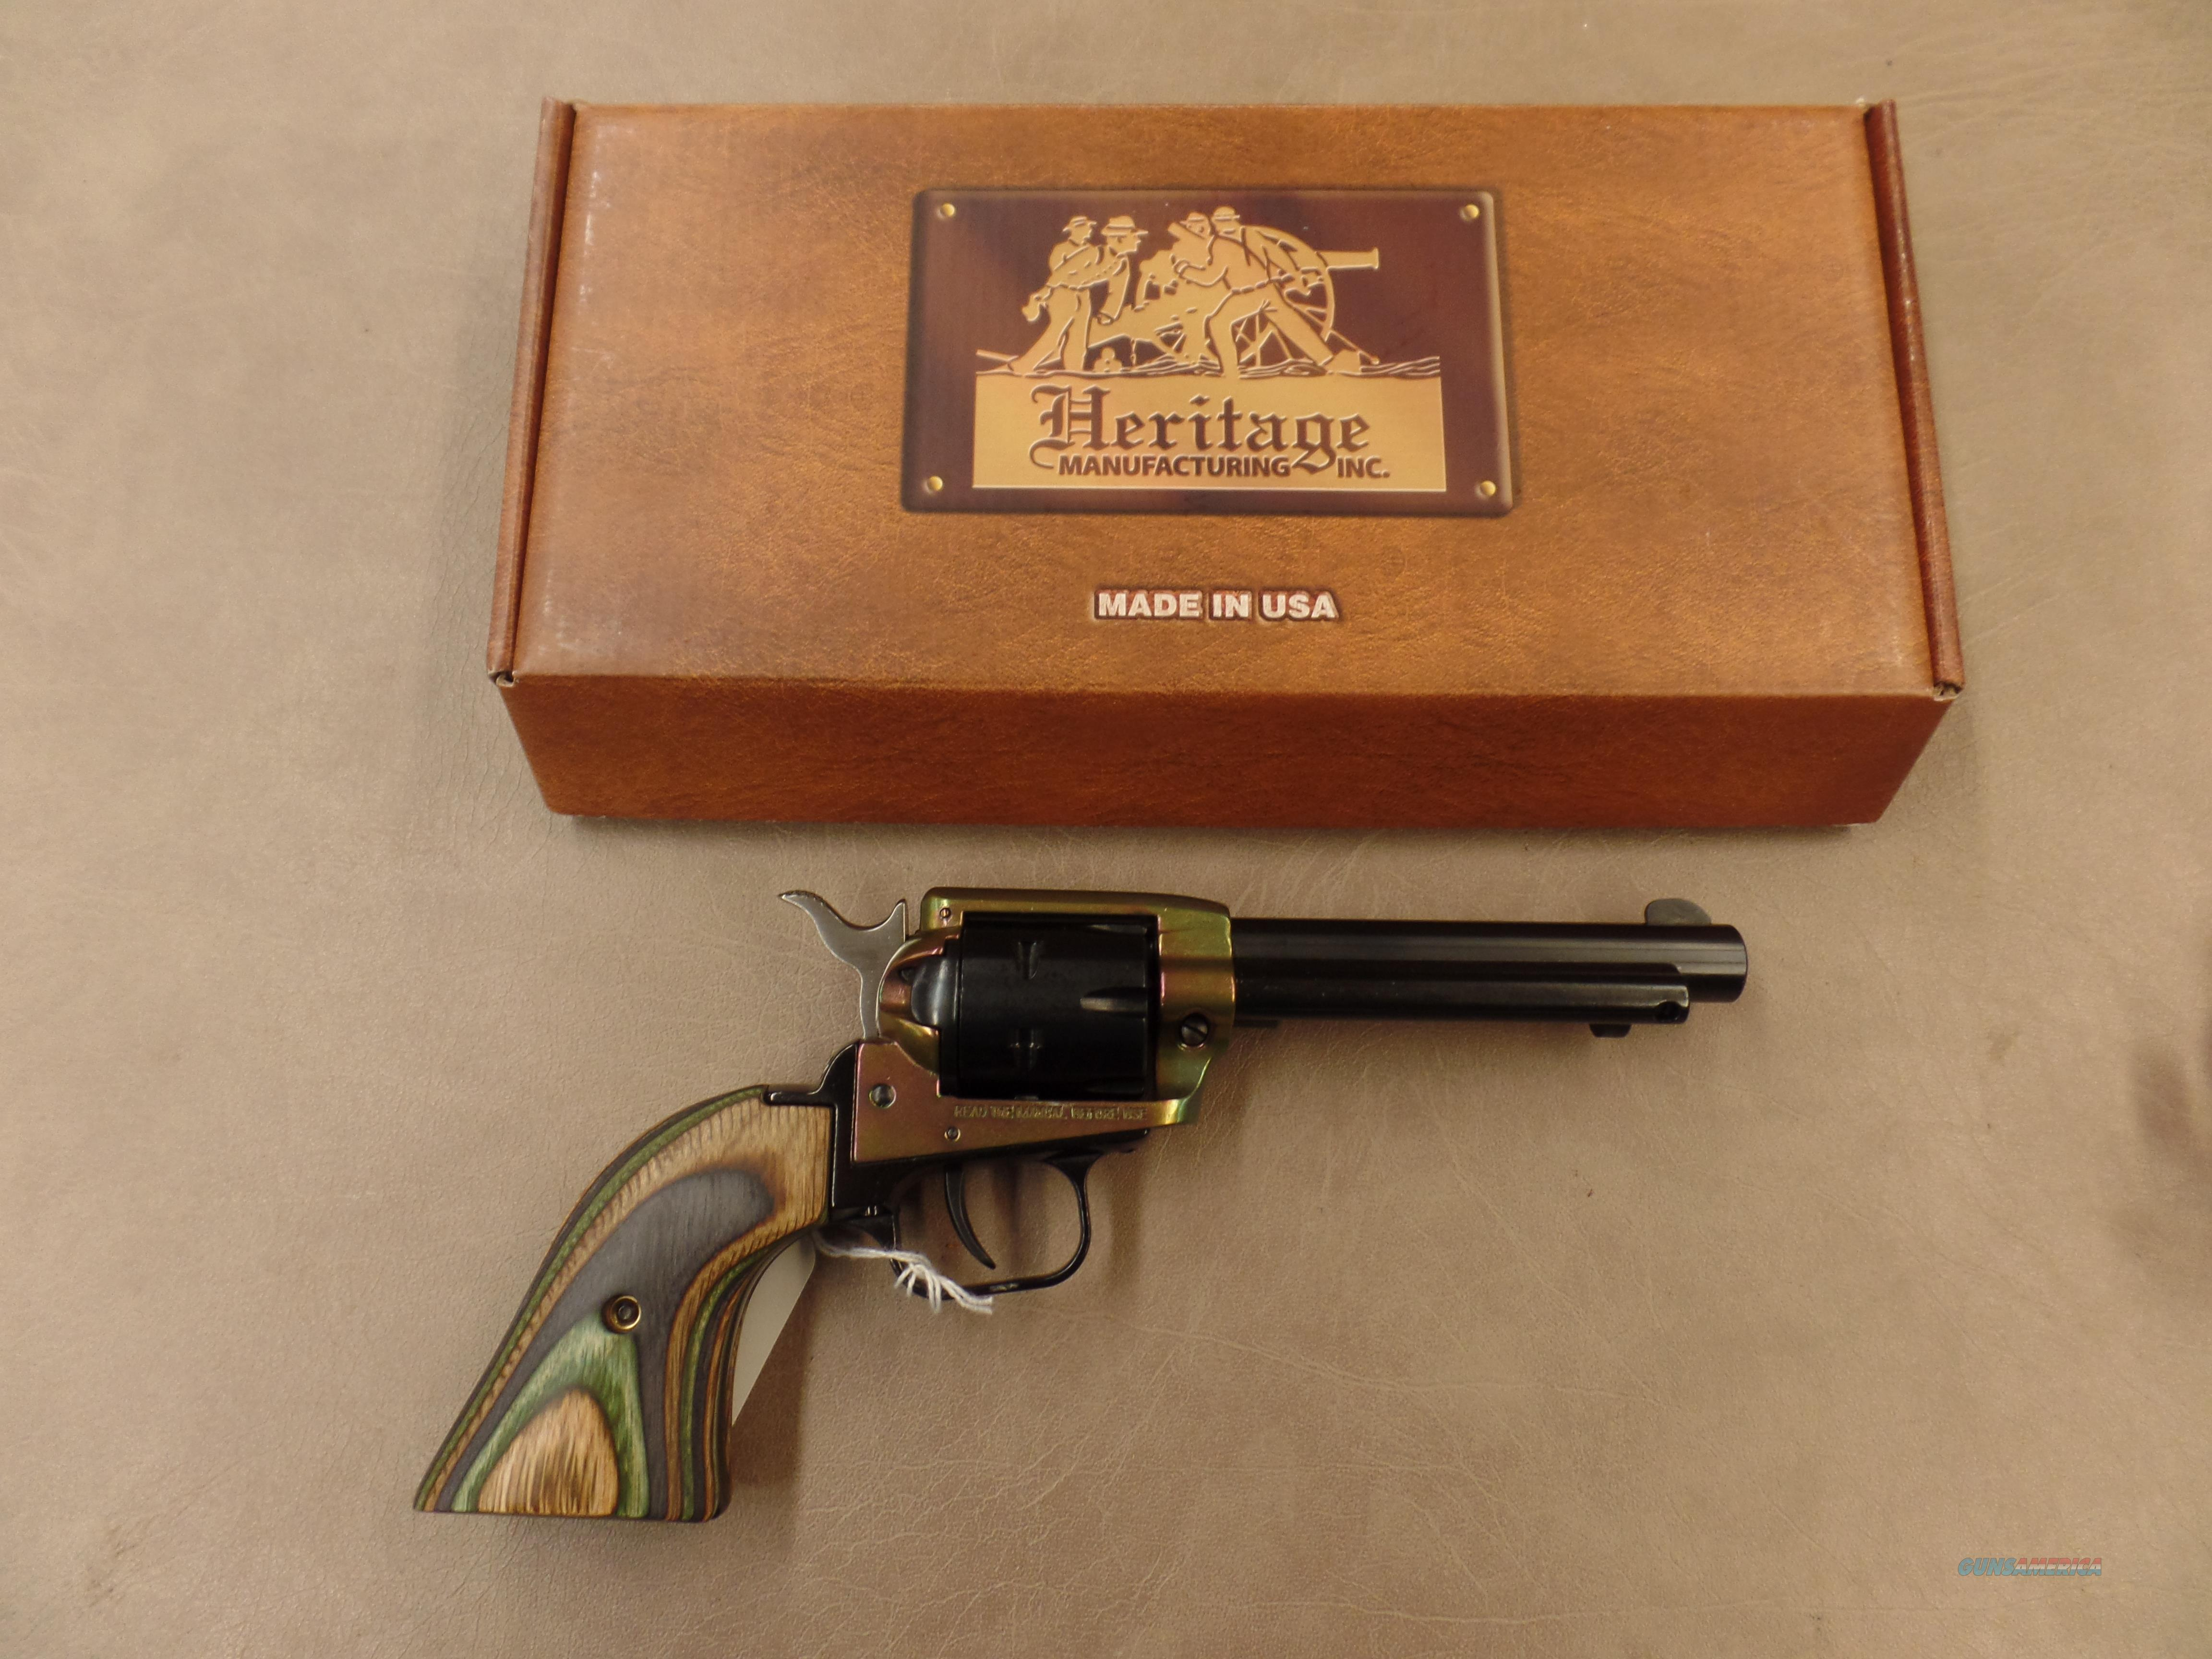 "Heritage Arms Rough Rider Color Case Hardened Finish 6 Shot 4 3/4"" (22 LR)  Guns > Pistols > Heritage"